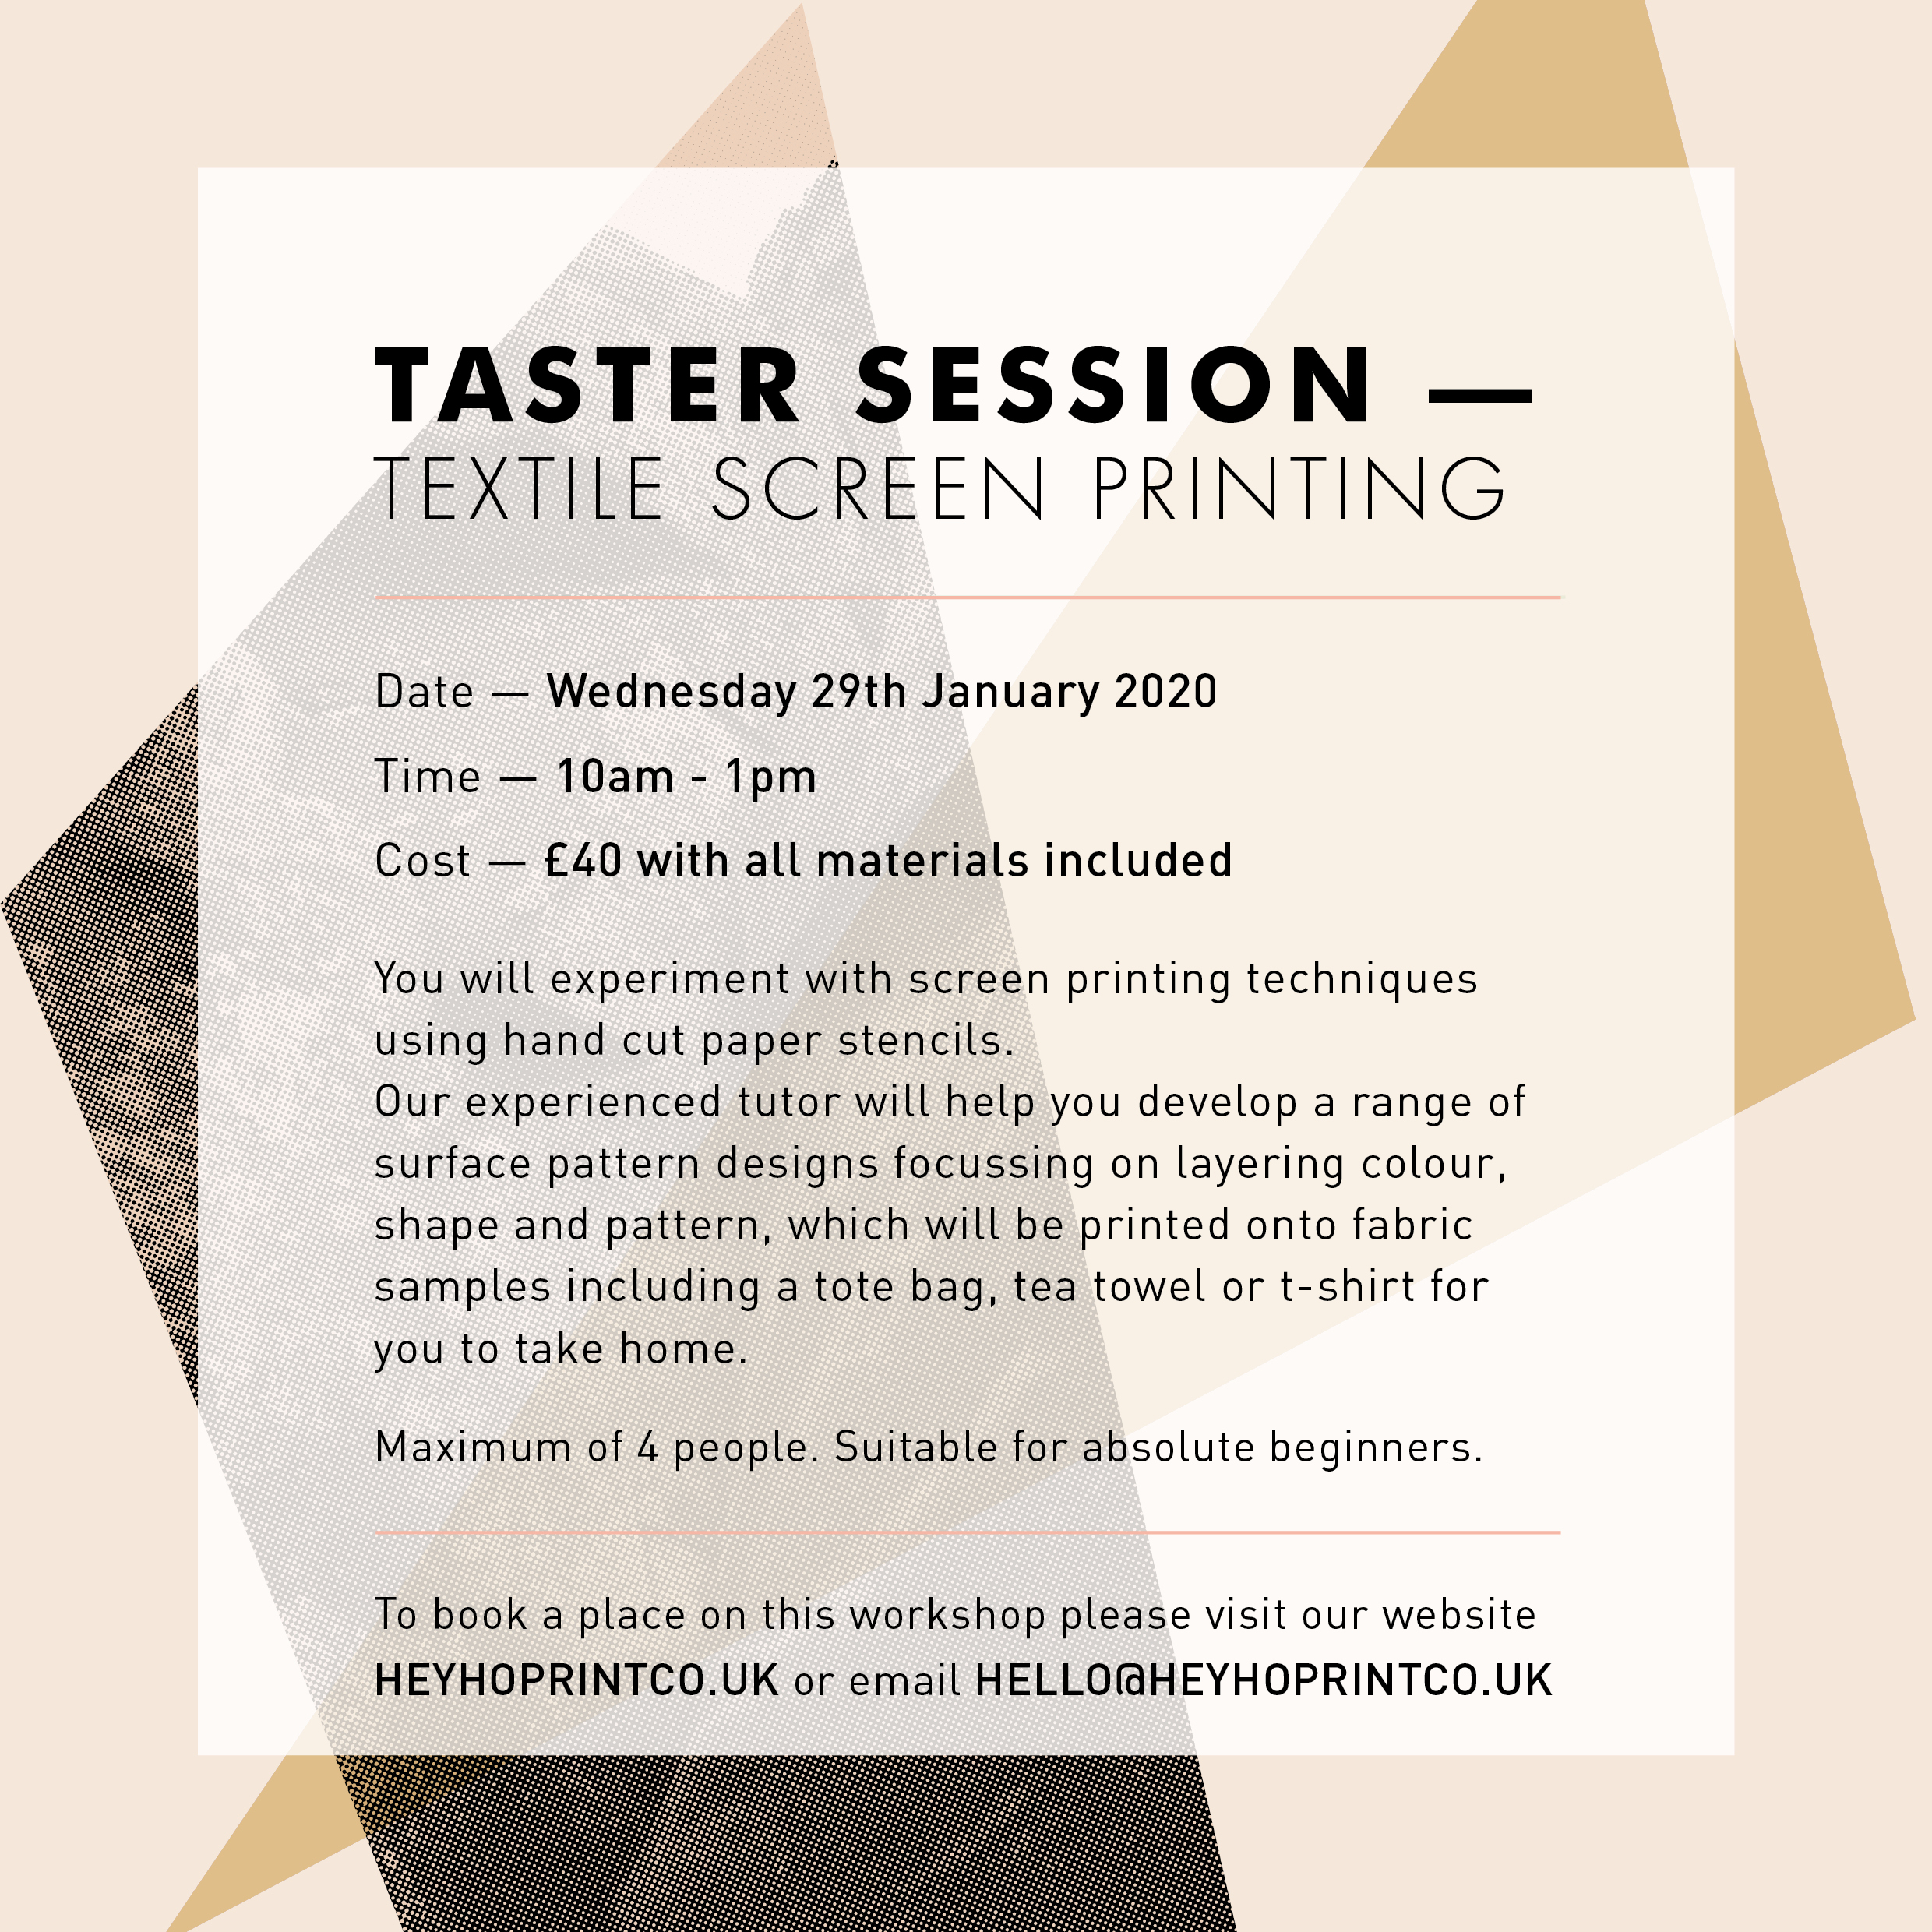 Textile Screen Printing – Taster January 29th 2020